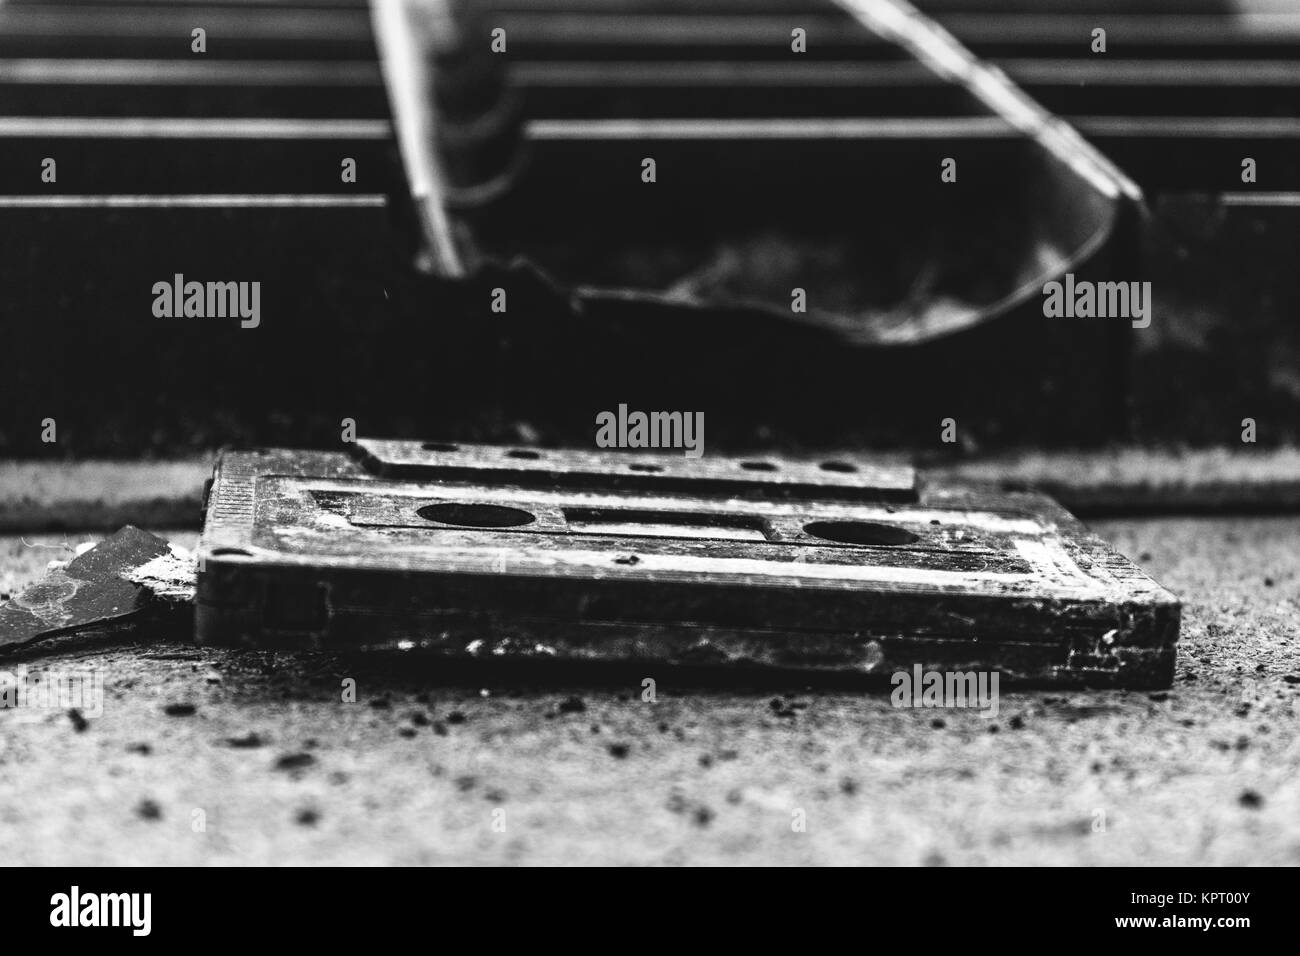 Old Compact Cassette with magnetic tape - Stock Image